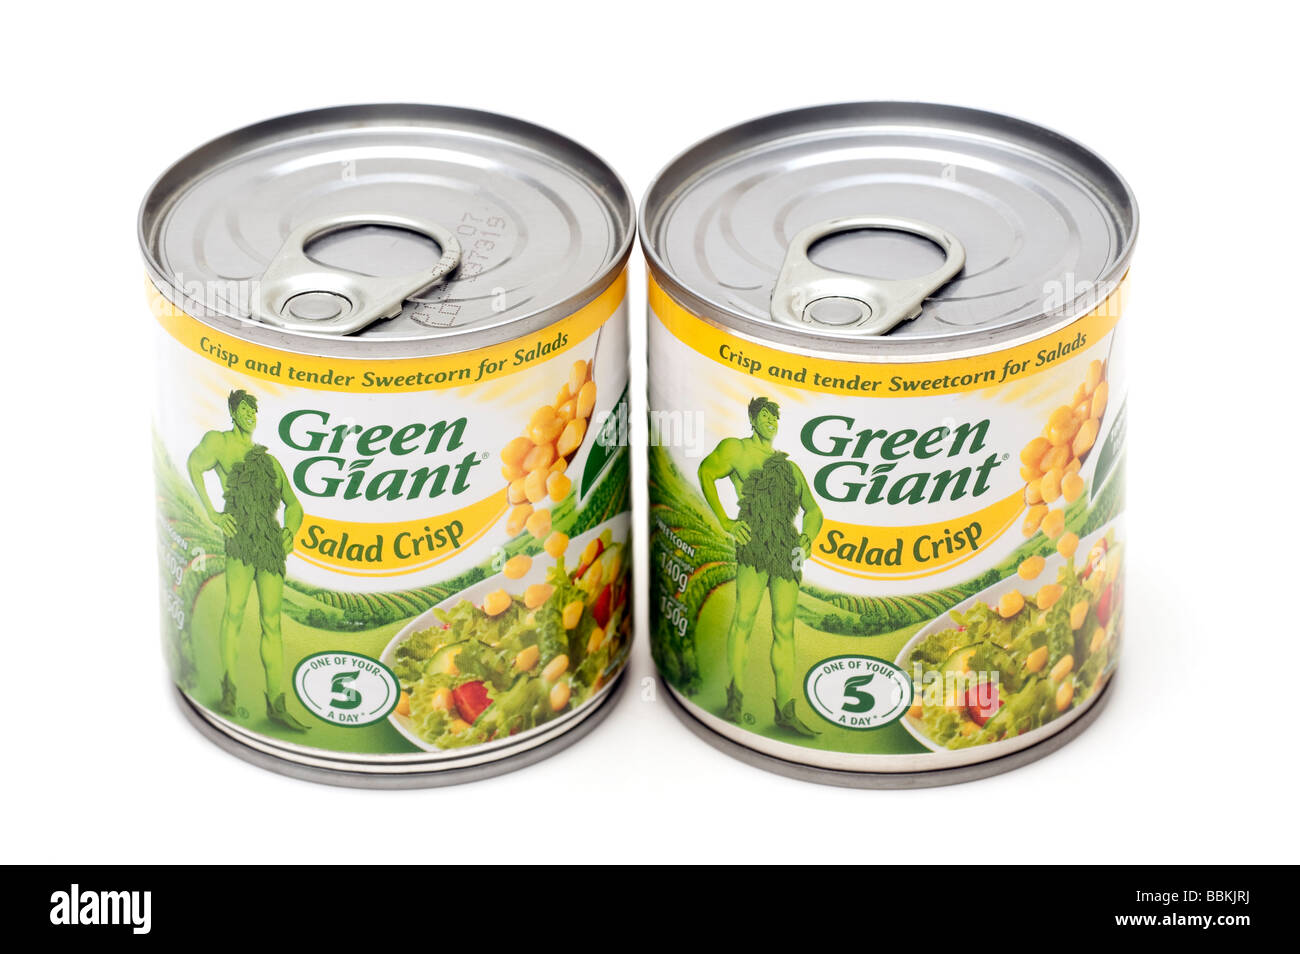 Two tins of Sweetcorn for Salads - Stock Image